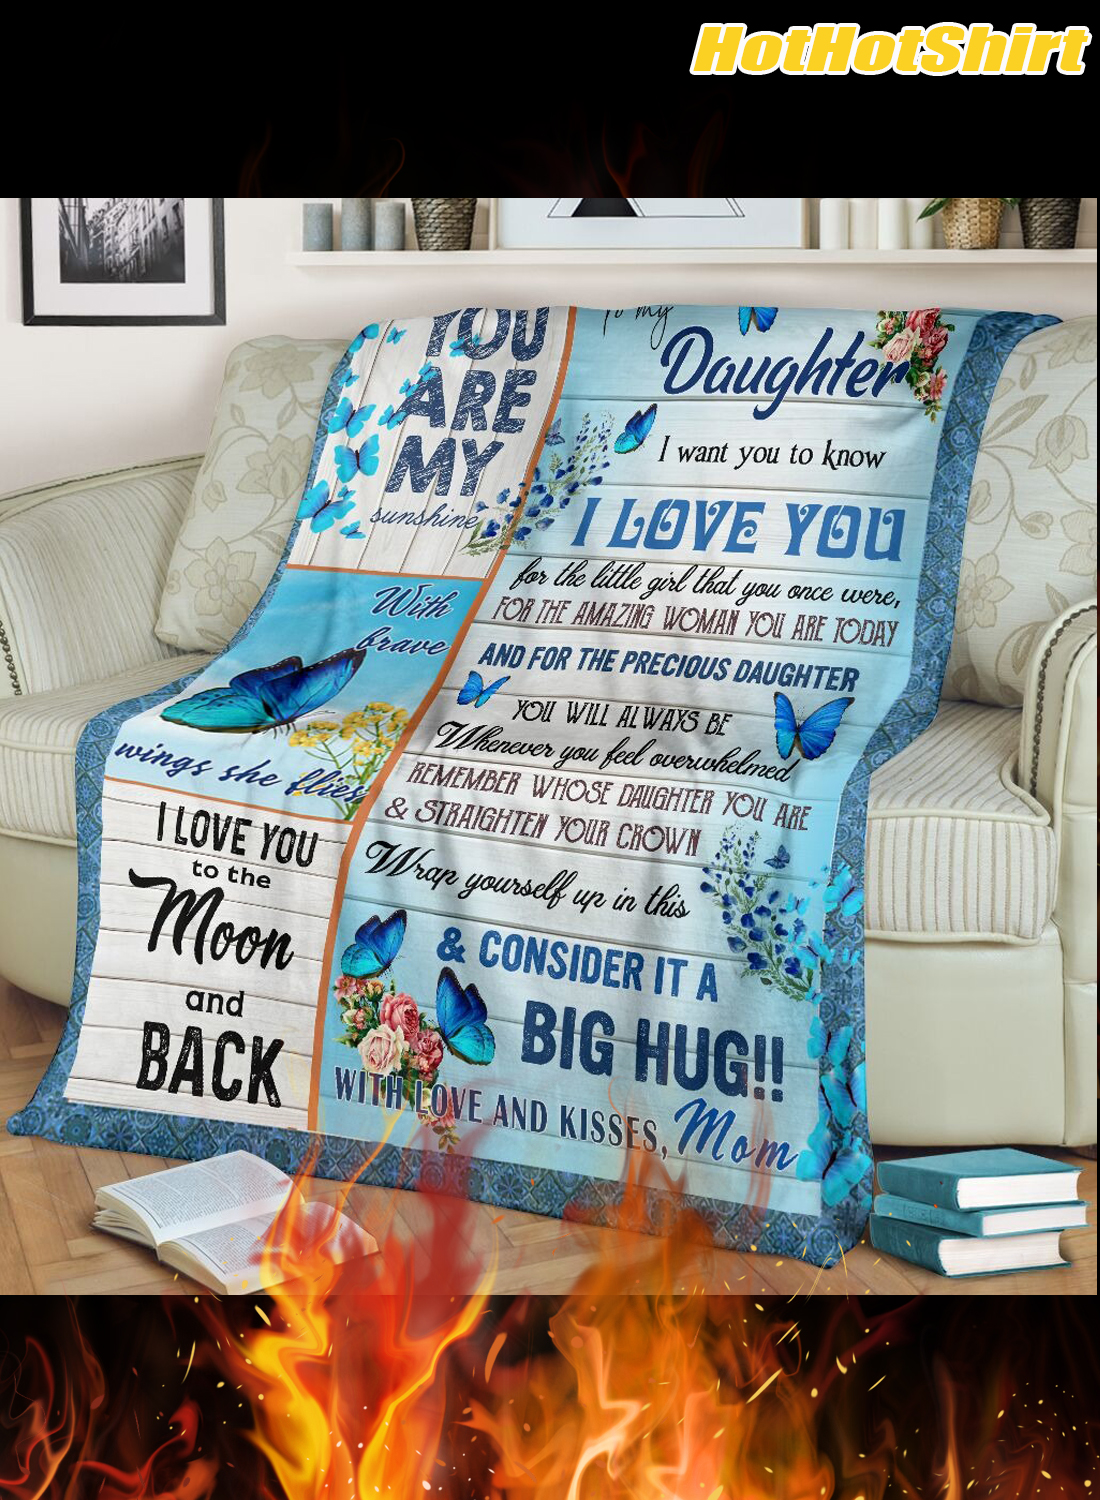 Butterfly to my daughter i want you to know i love you your mom blanket 2